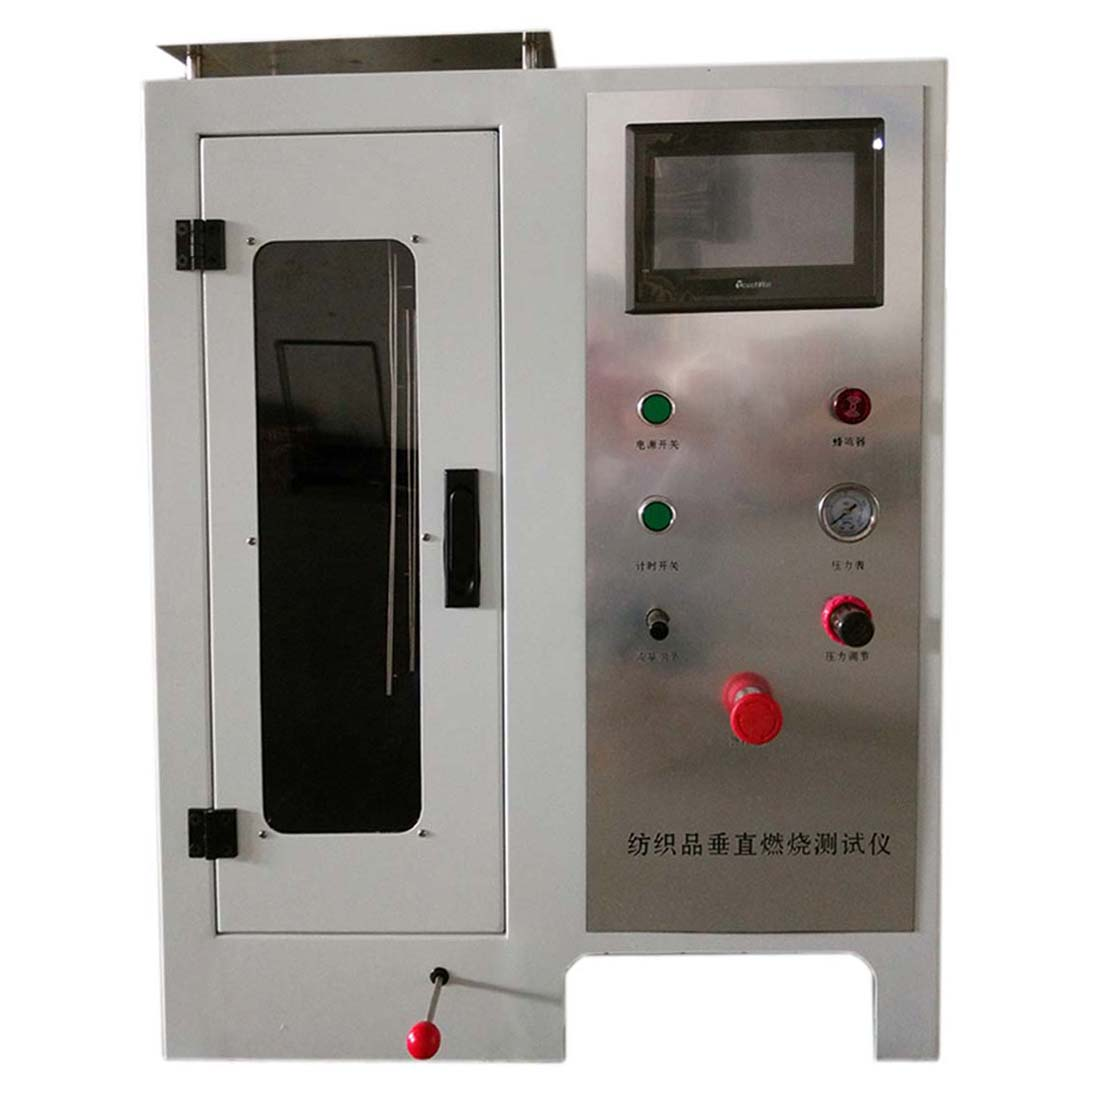 ISO 6941: 2003 Fabrics Vertical Burning testing instrument